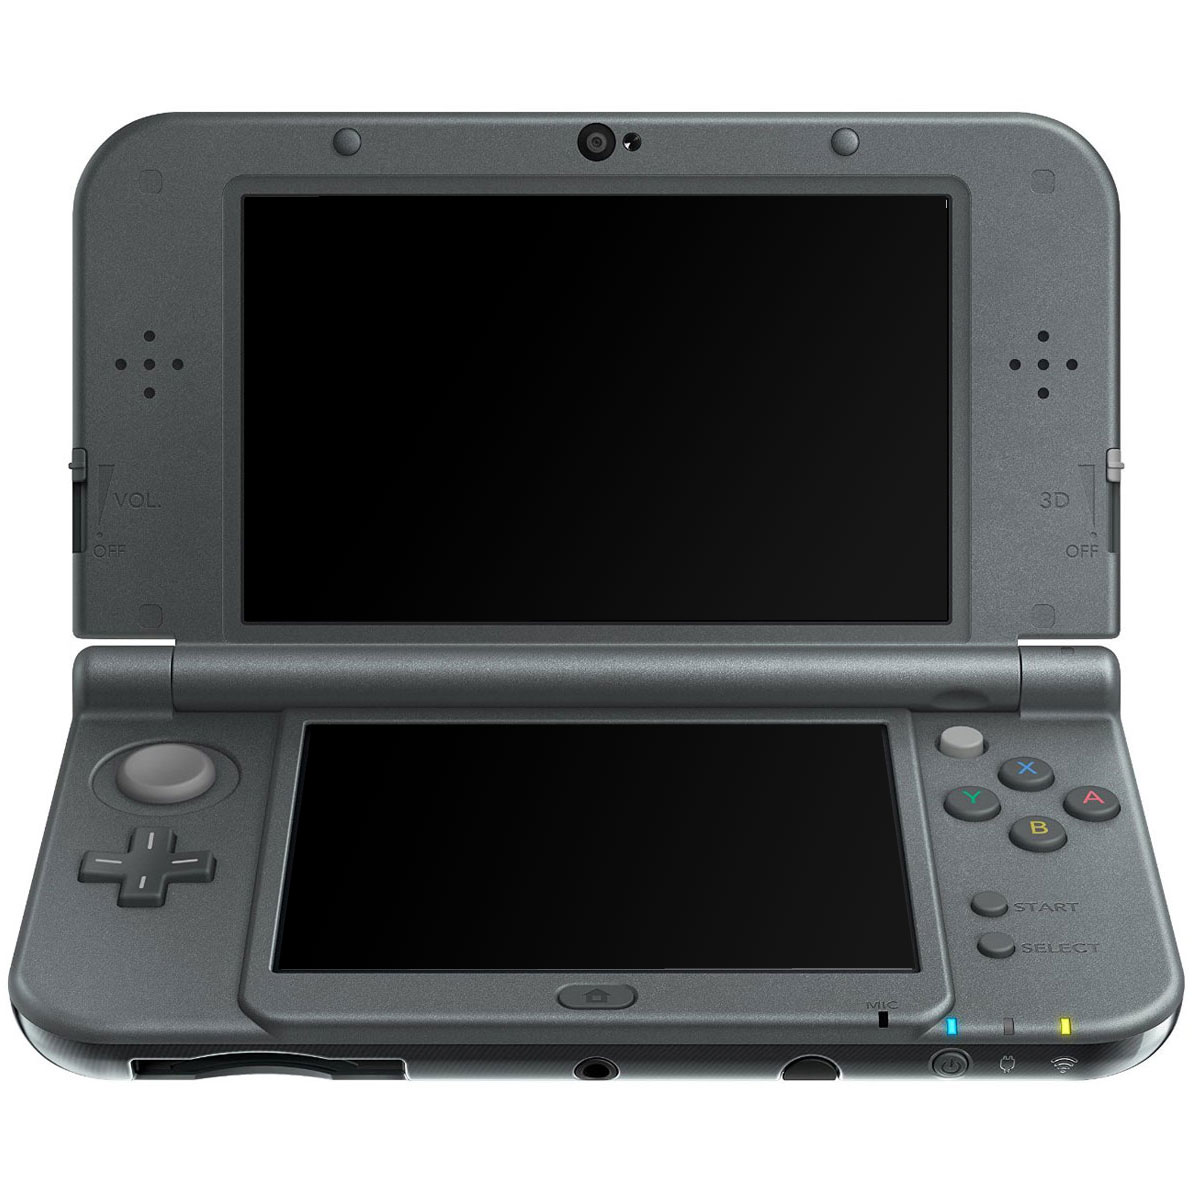 nintendo new 3ds xl noire 2206032 achat vente console nintendo 3ds sur. Black Bedroom Furniture Sets. Home Design Ideas